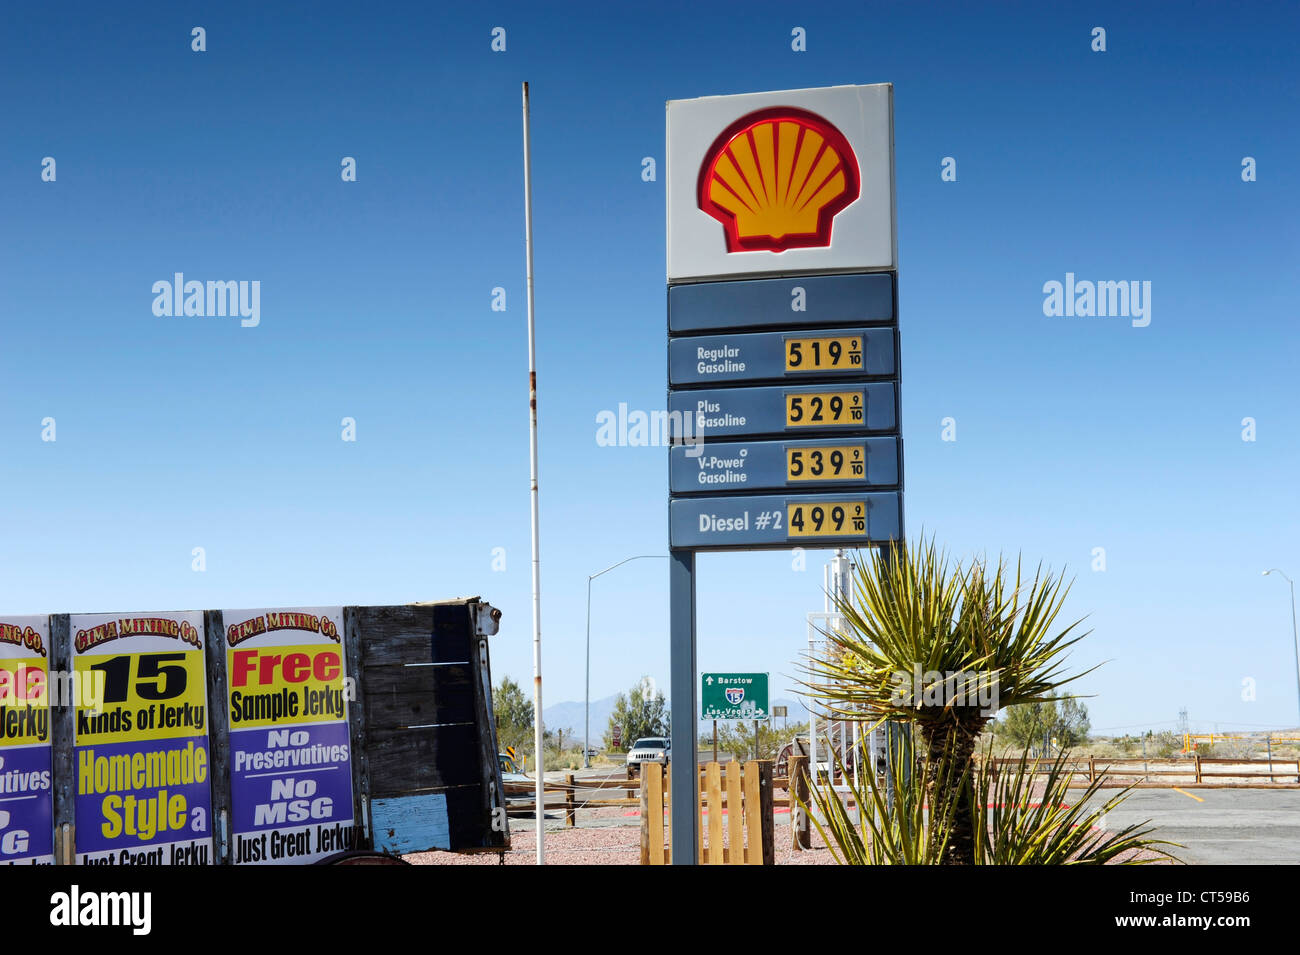 shell gas station sign showing gas prices junction of